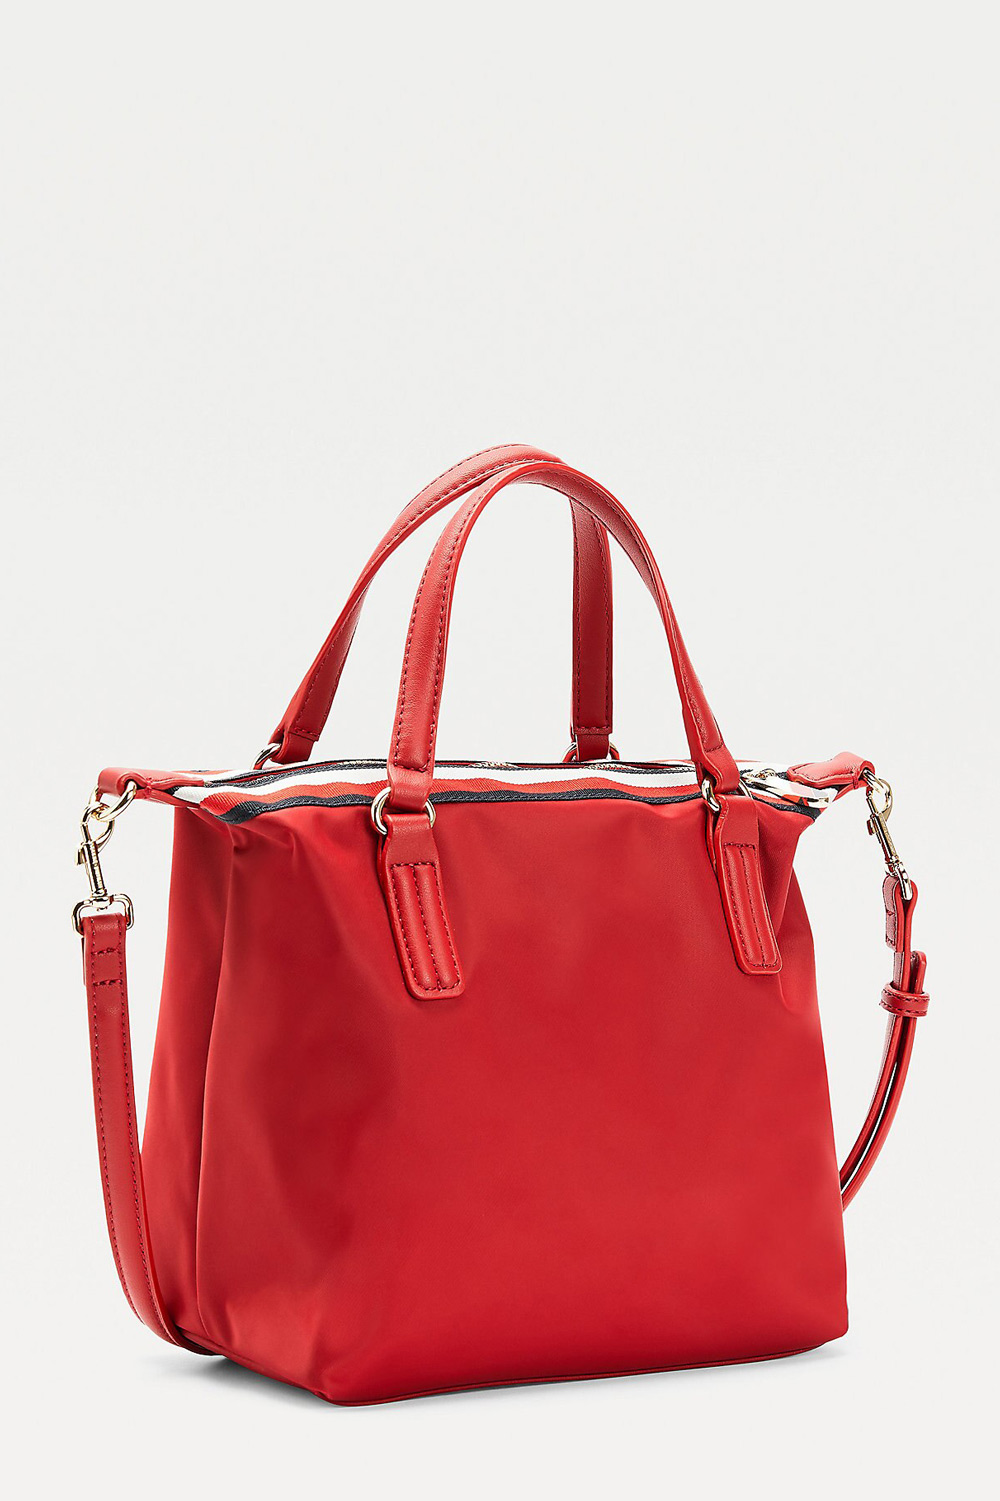 Tommy Hilfiger bordová kabelka Popy Small Tote Corp Arizona Red